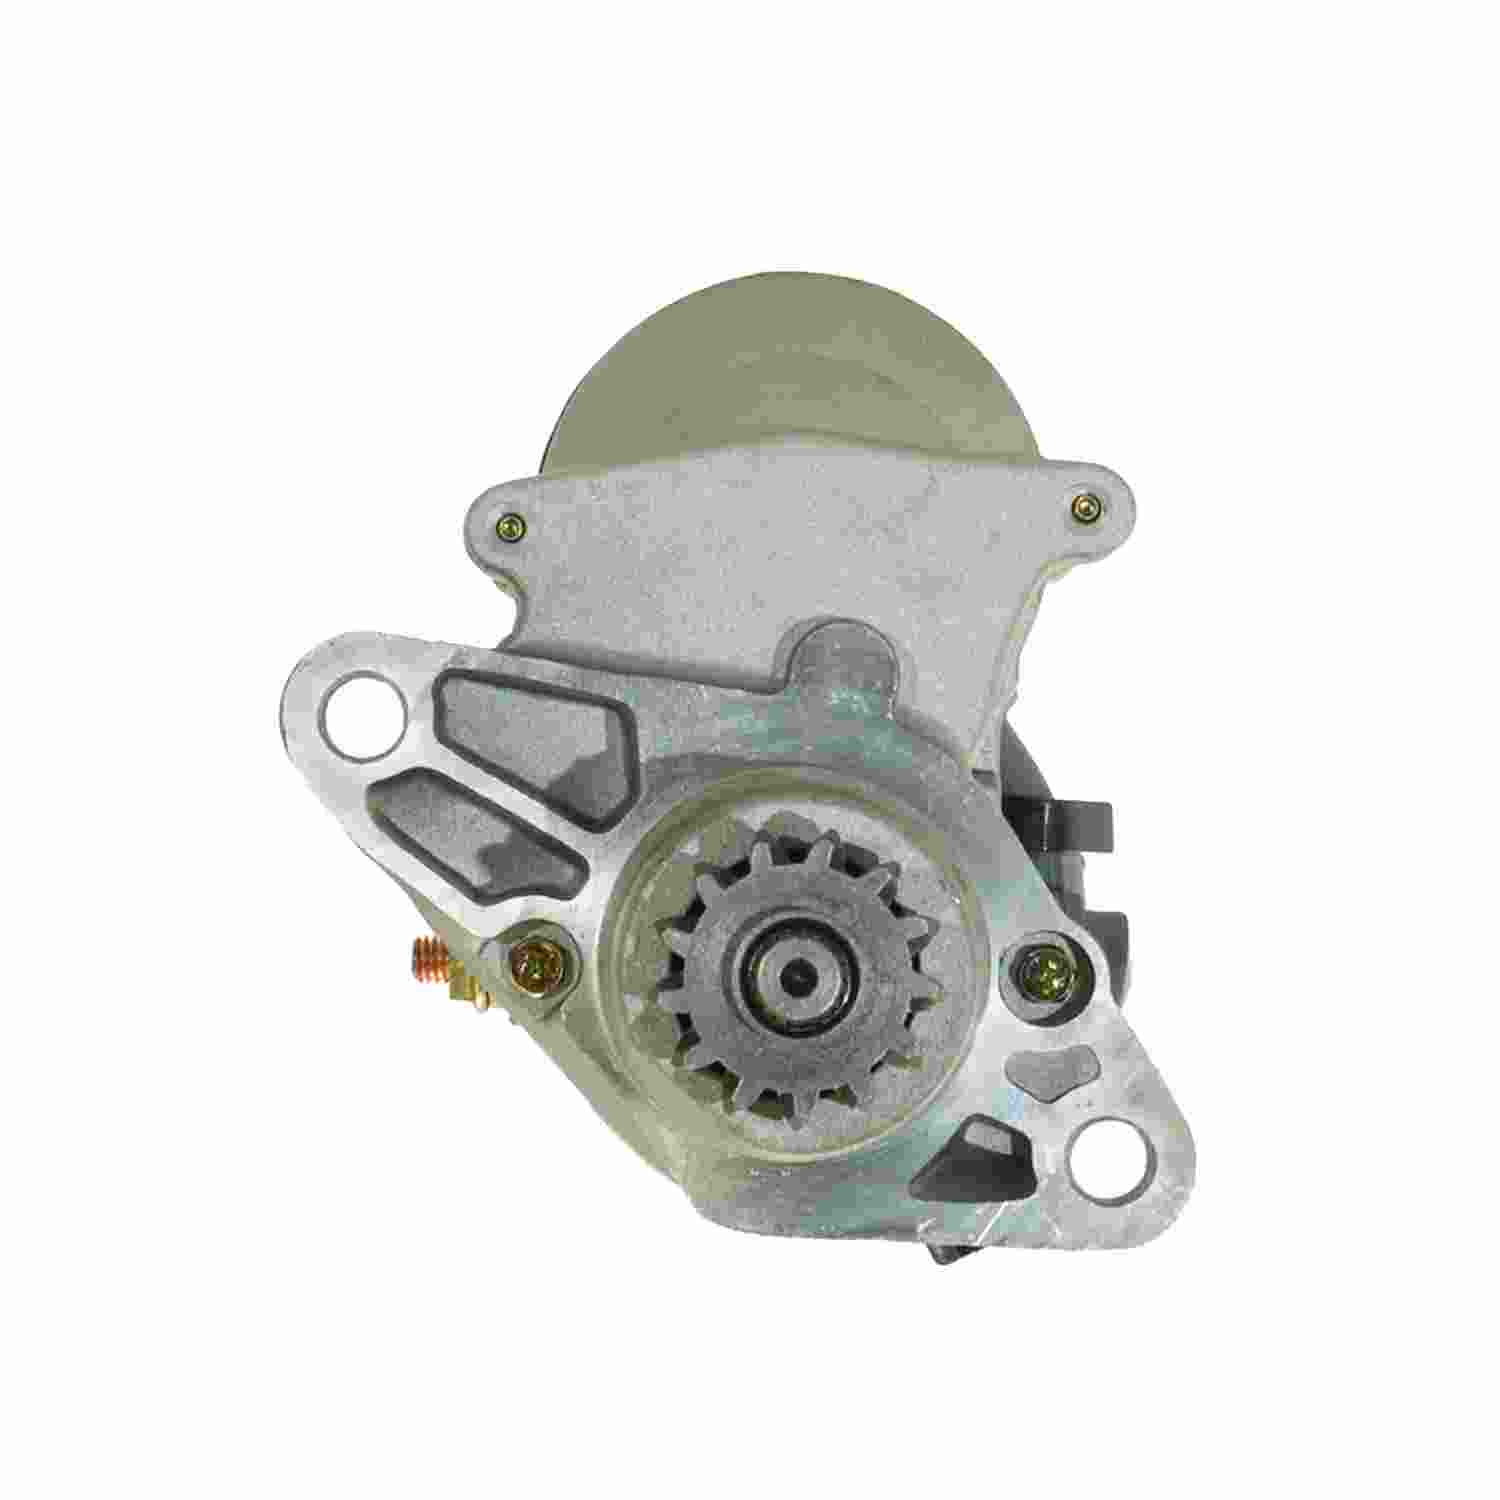 ACDELCO PROFESSIONAL - Starter Motor - DCC 337-1106